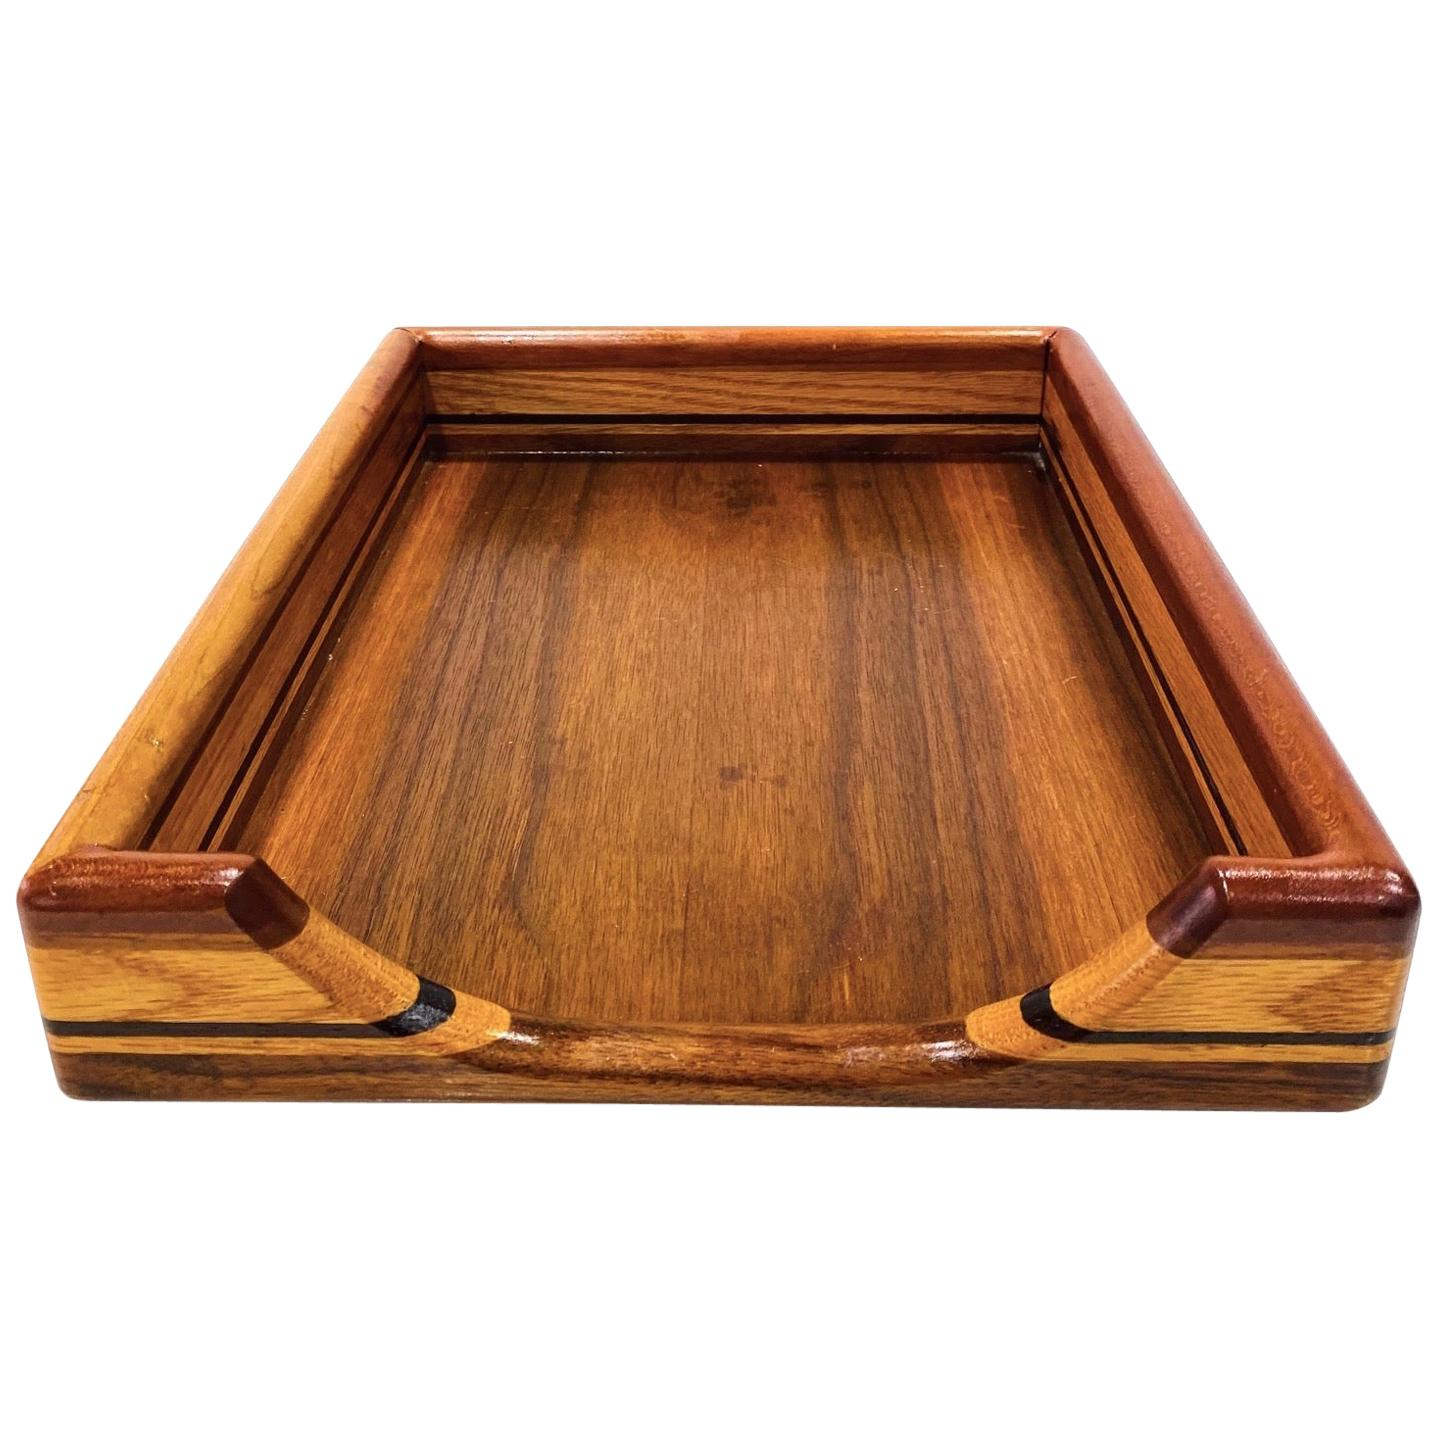 Vintage Danish Modern Letter and Paper Tray in Teak, Maple, and Walnut